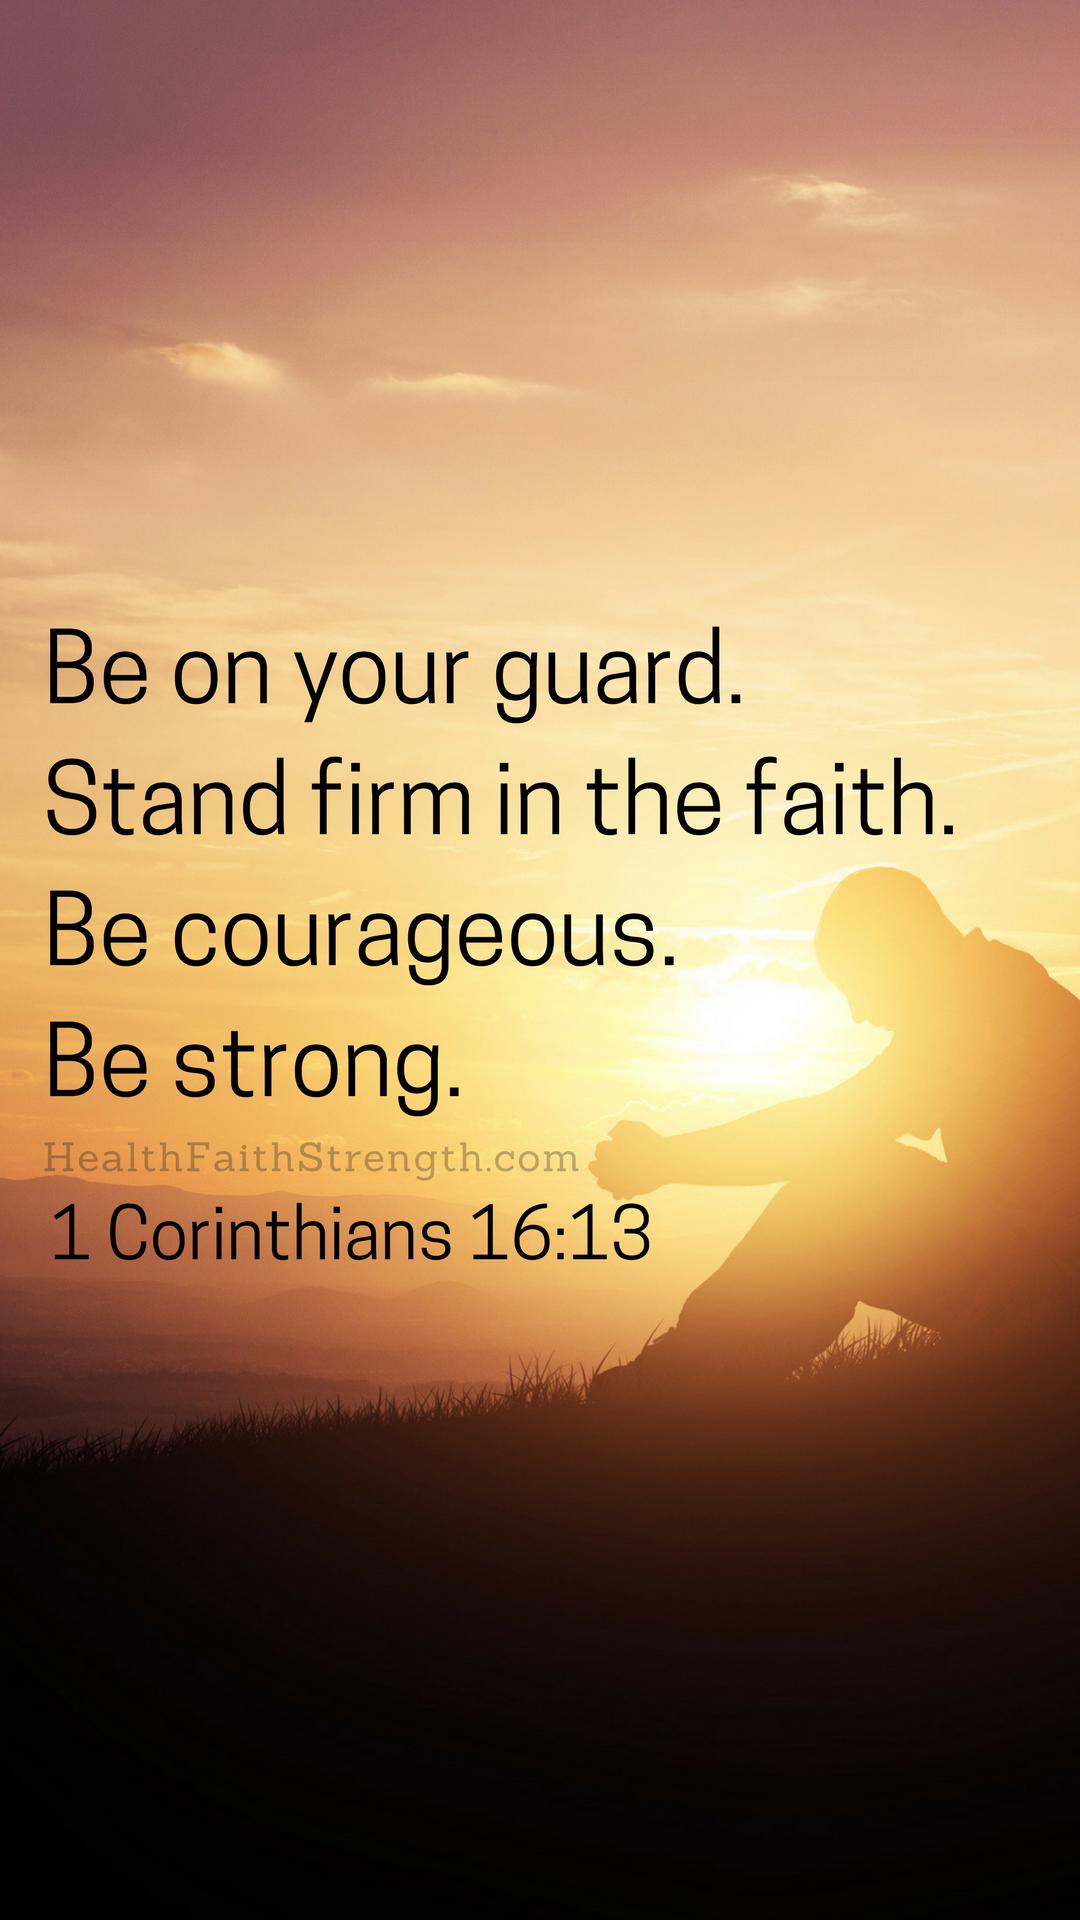 DOWNLOADABLE BIBLE VERSE WALLPAPERS FOR IPHONE - HealthFaithStrength.com - 1 Corinthians 16:13 ...